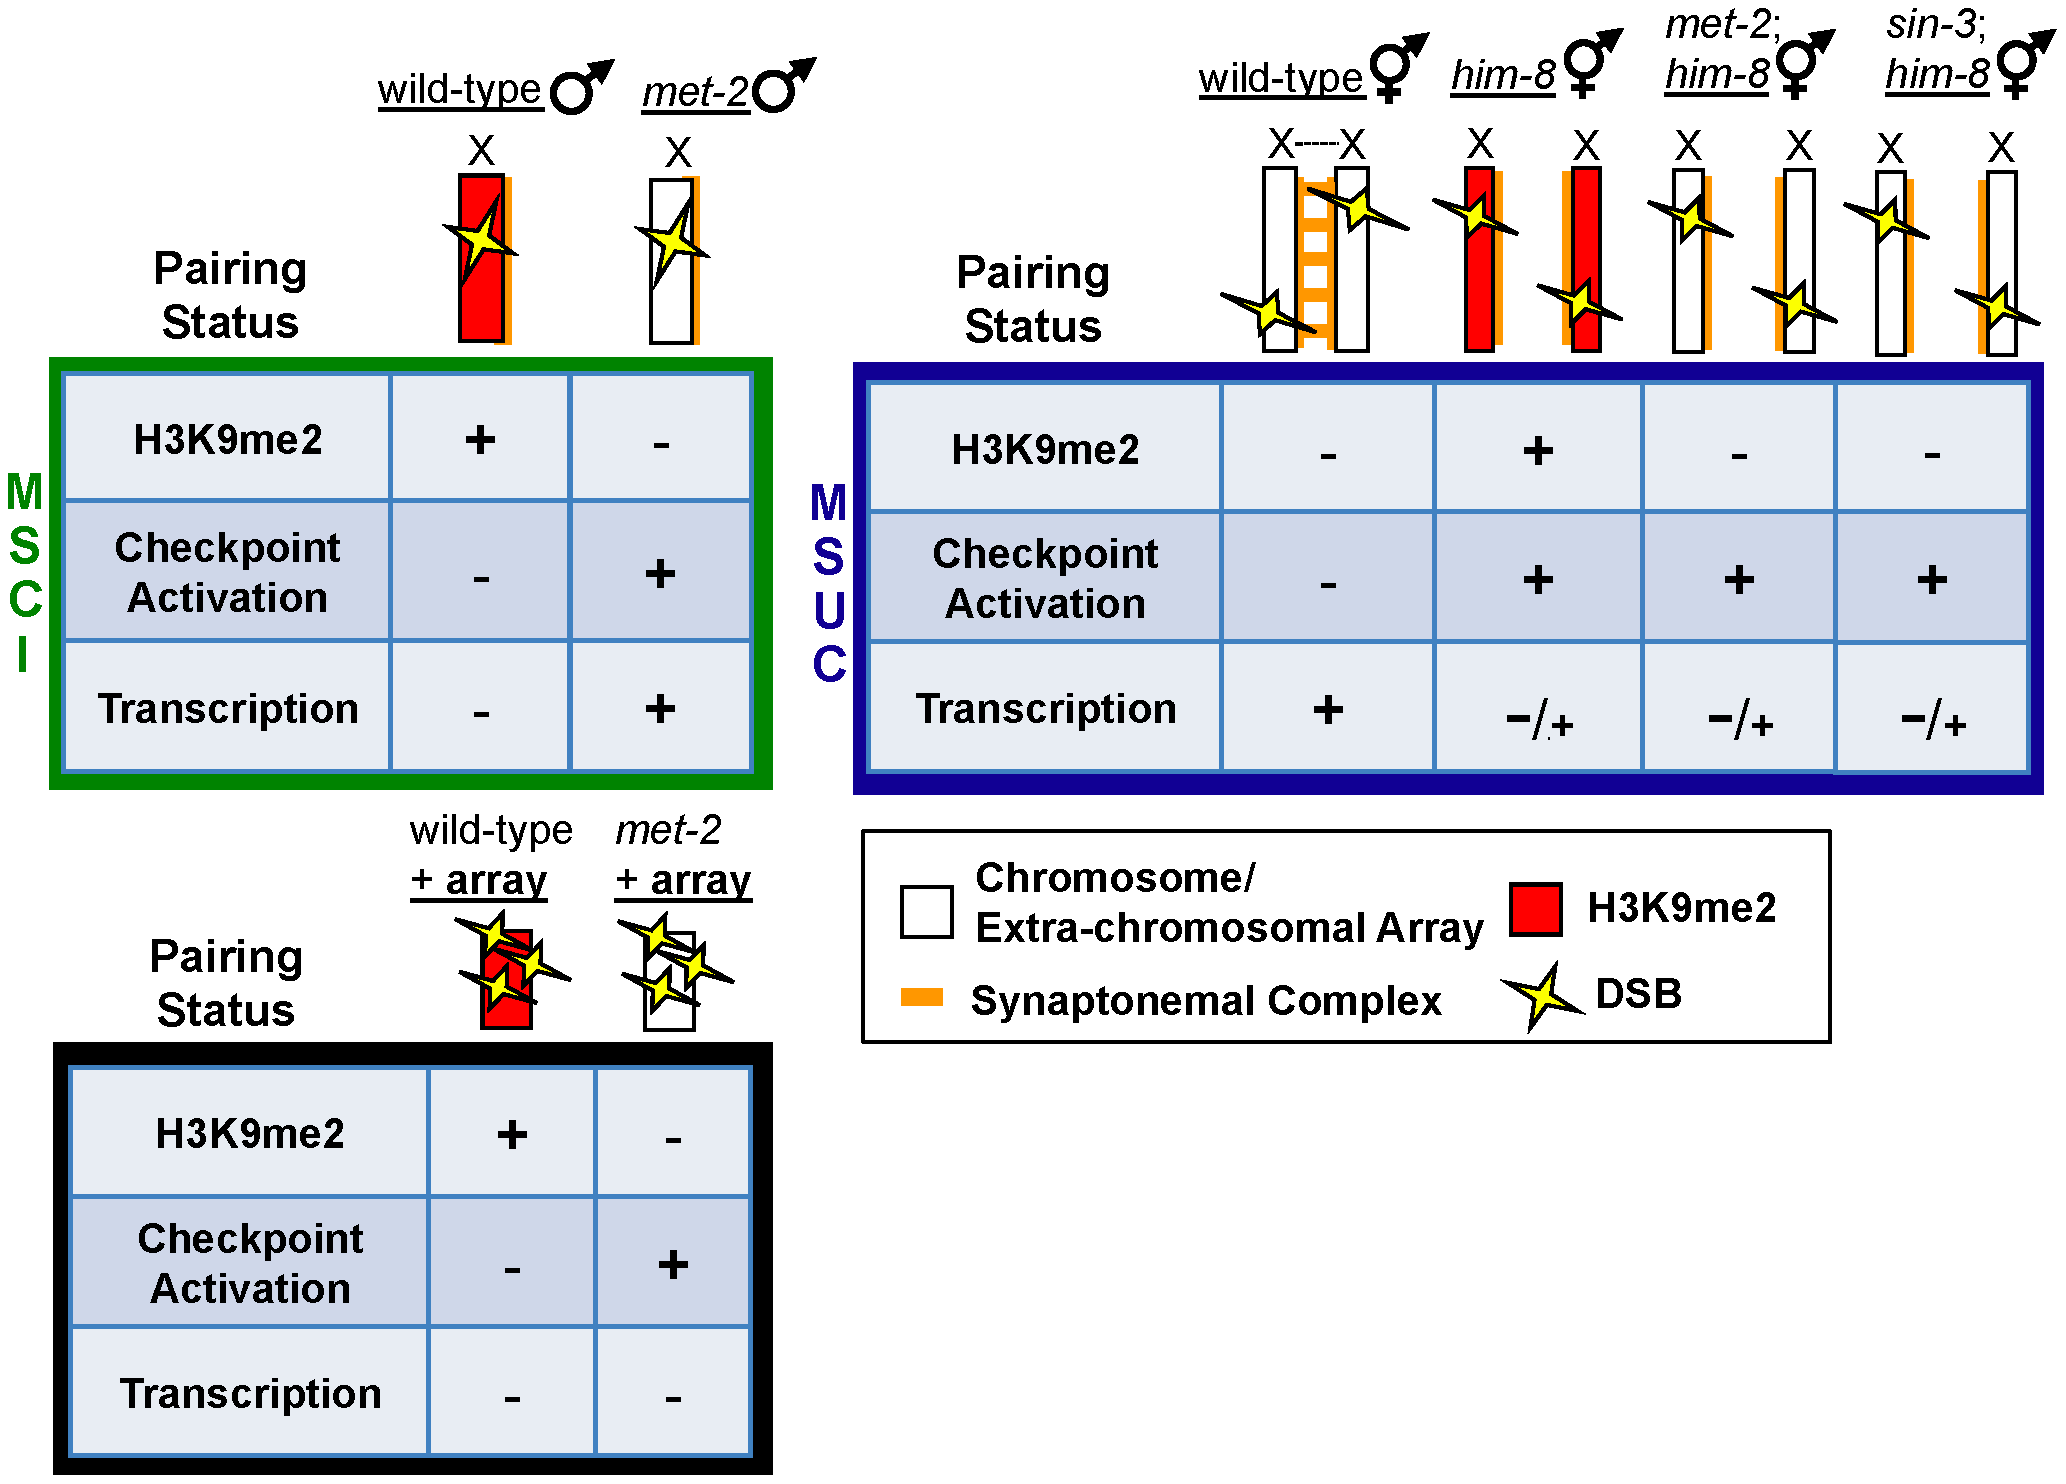 Repressive chromatin architecture blocks meiotic checkpoint signaling and facilitates MSCI on the single X chromosome but is dispensable for transcriptional inactivation on asynapsed chromosome pairs.